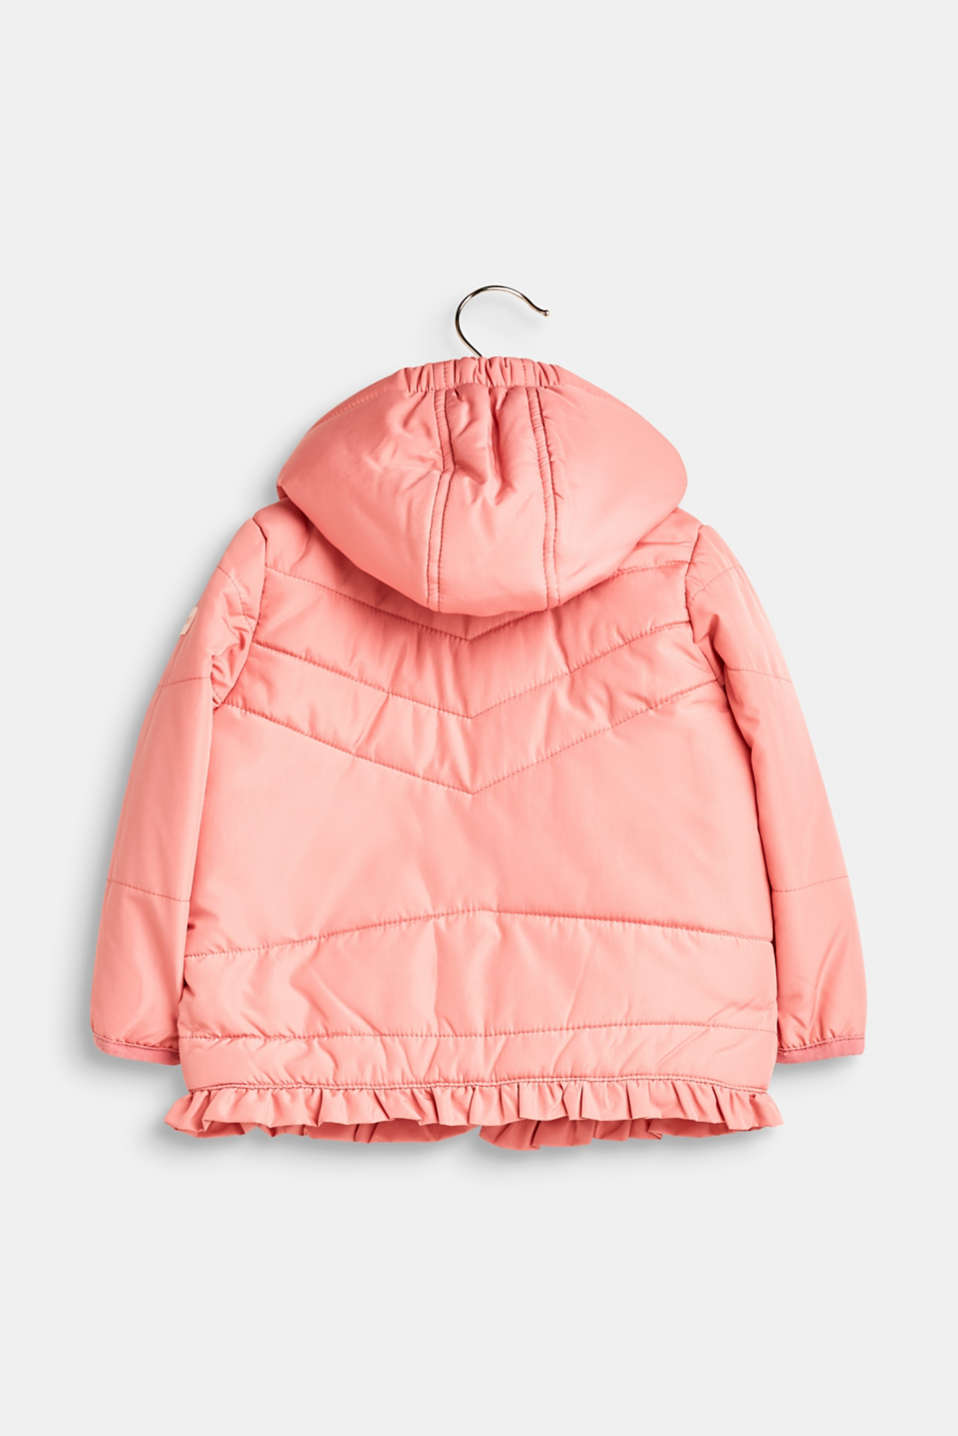 Quilted jacket with an adjustable hood and frill